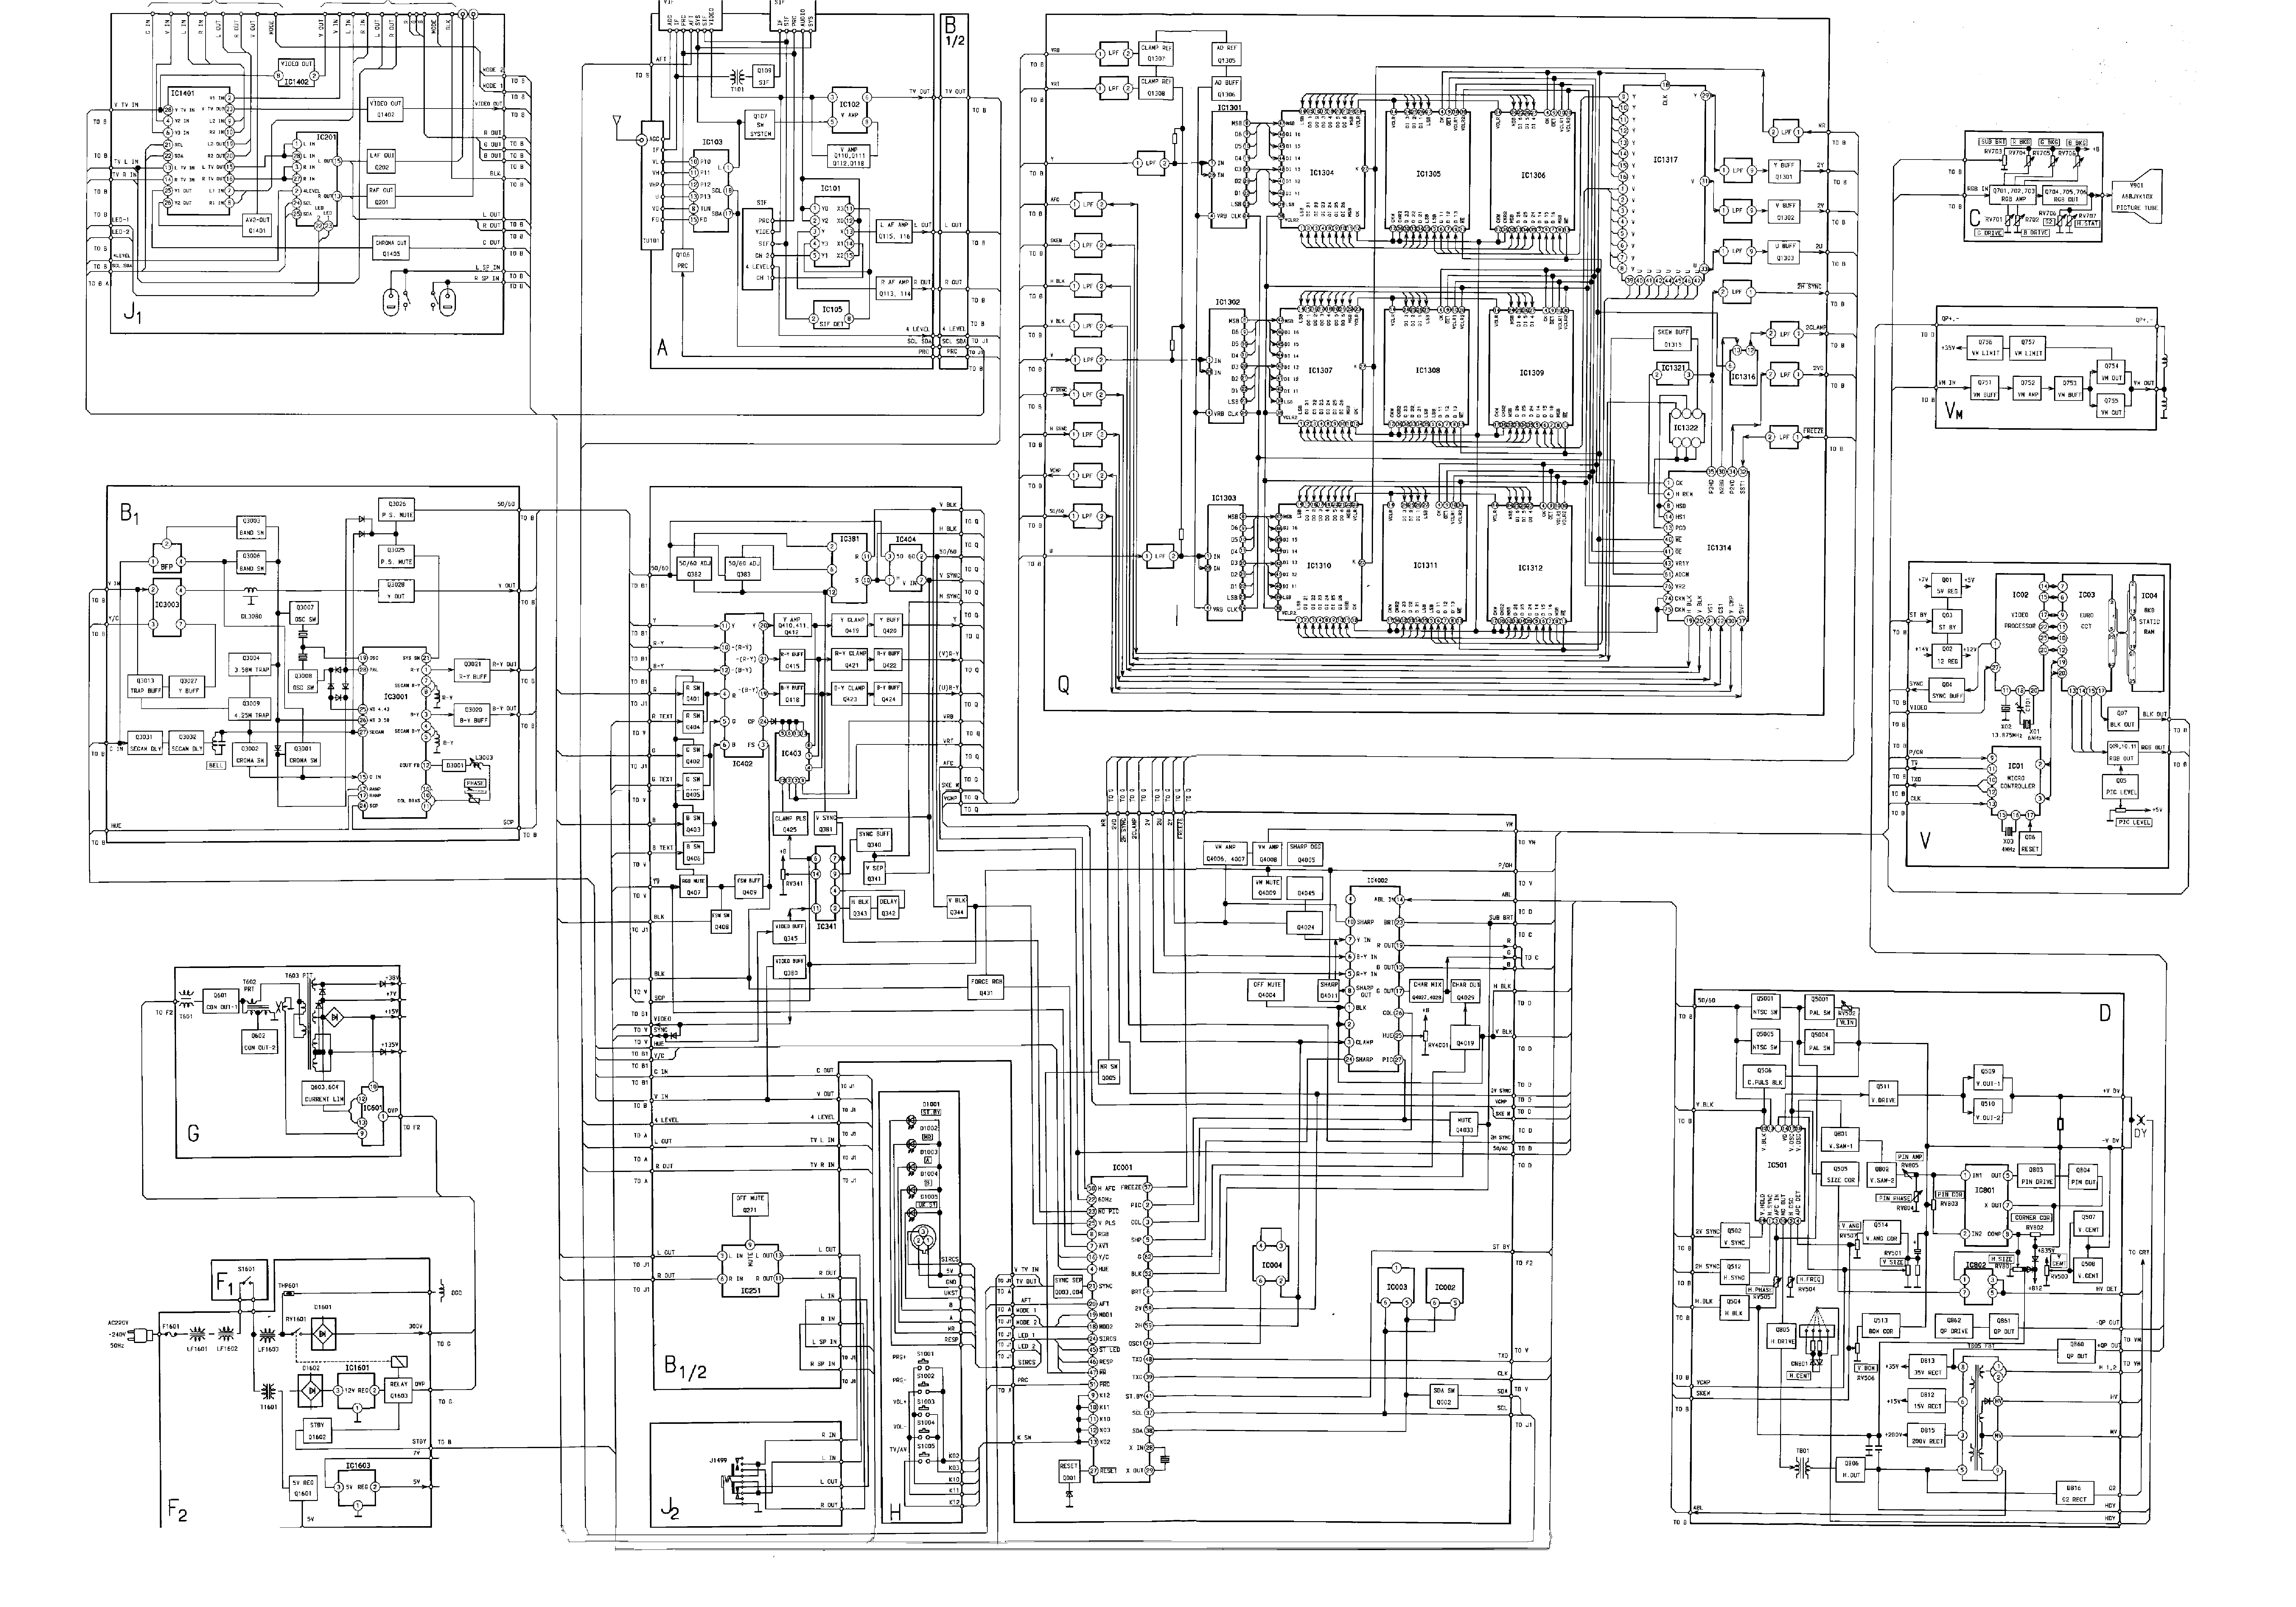 sony kdf-46e2000 wiring diagram